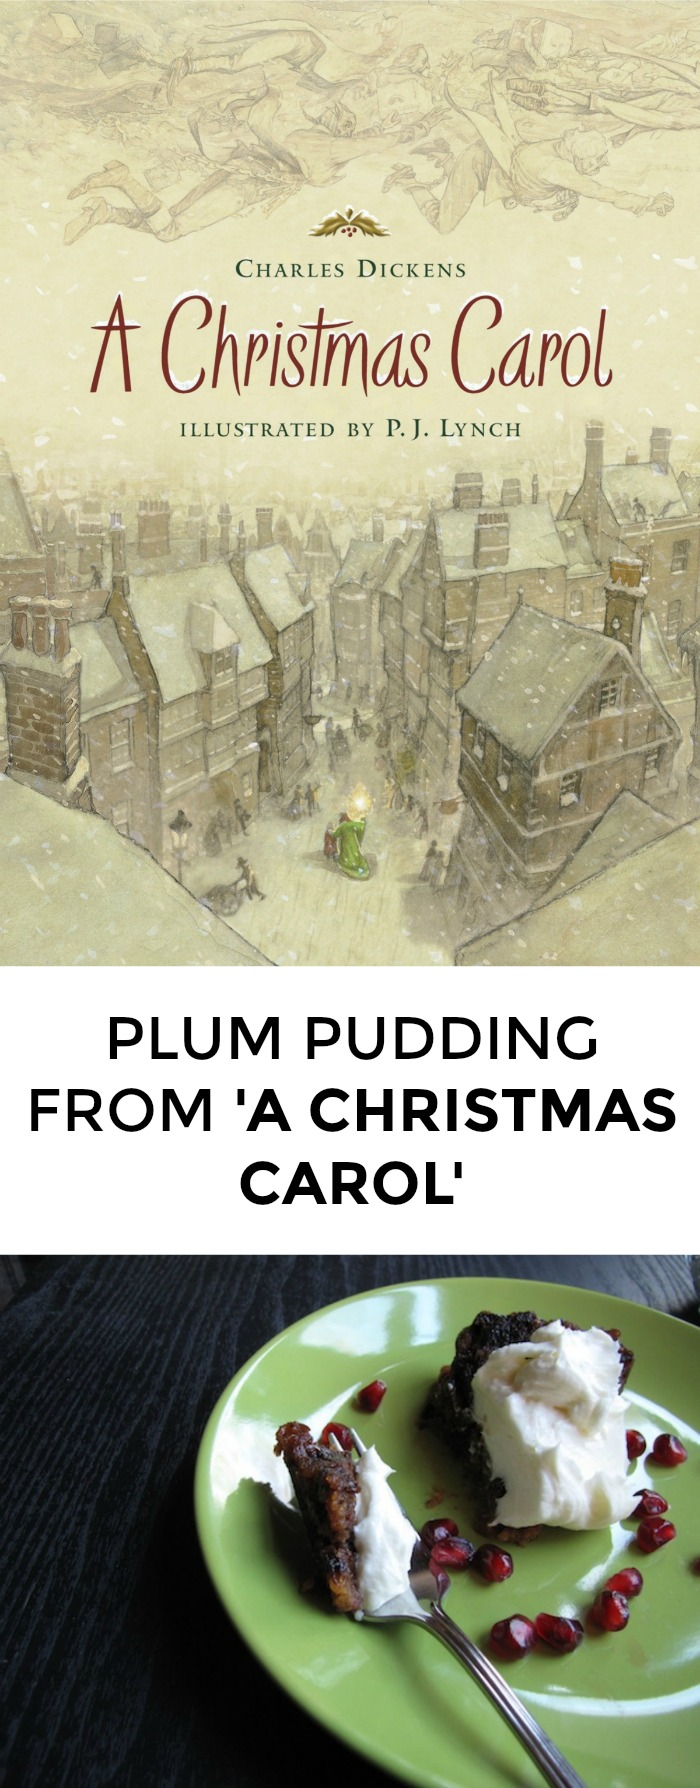 A great plum pudding recipe in honor of A Christmas Carol. Super fun to make with kids! // yesandyes.org